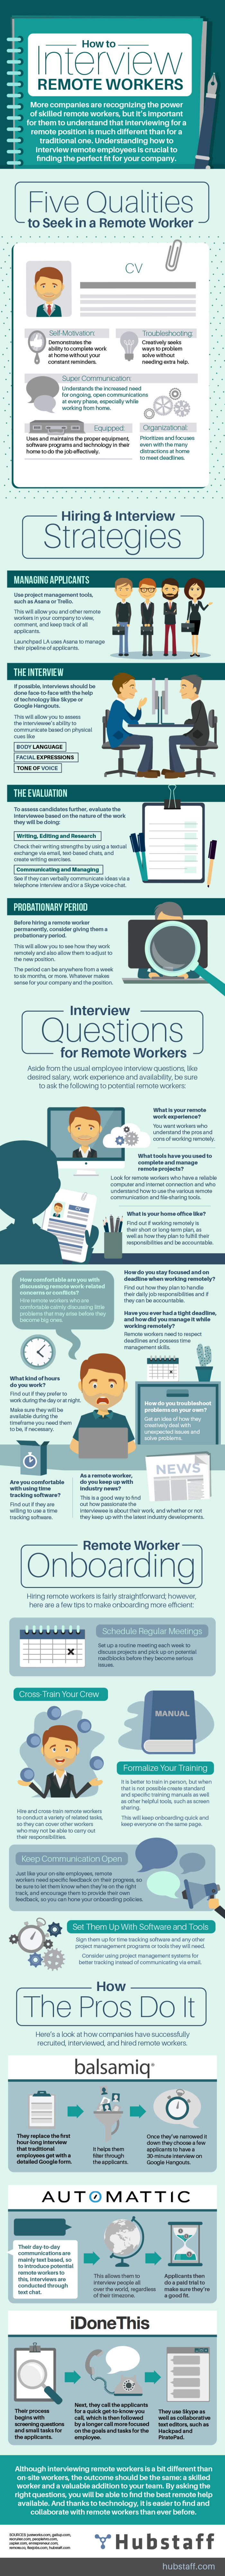 ten interview questions for remote working candidates infographic 10tipsremoteworkers